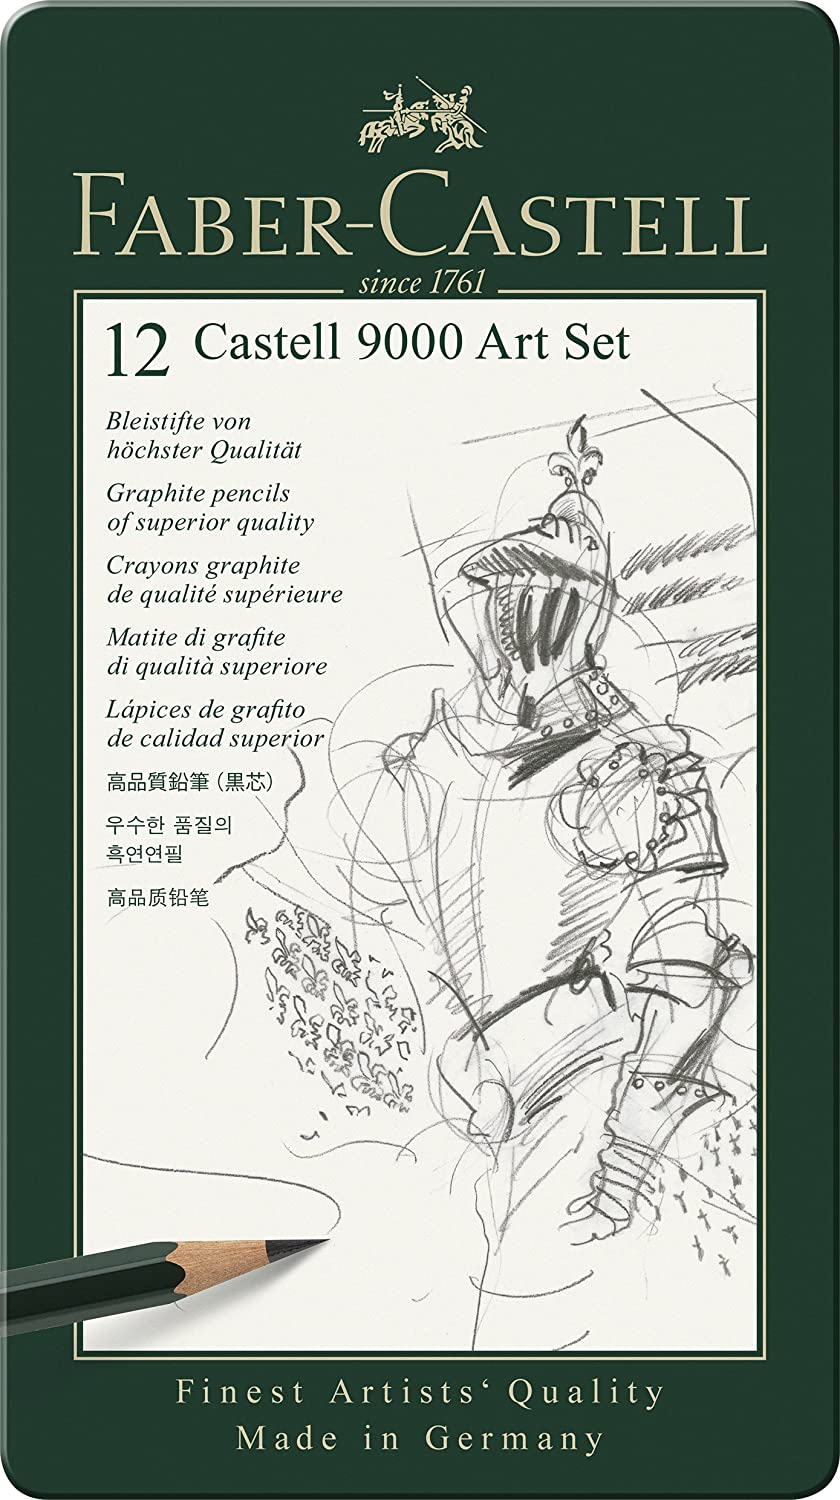 Faber Castell 9000 Art Set 12 X Pencils by Amazon